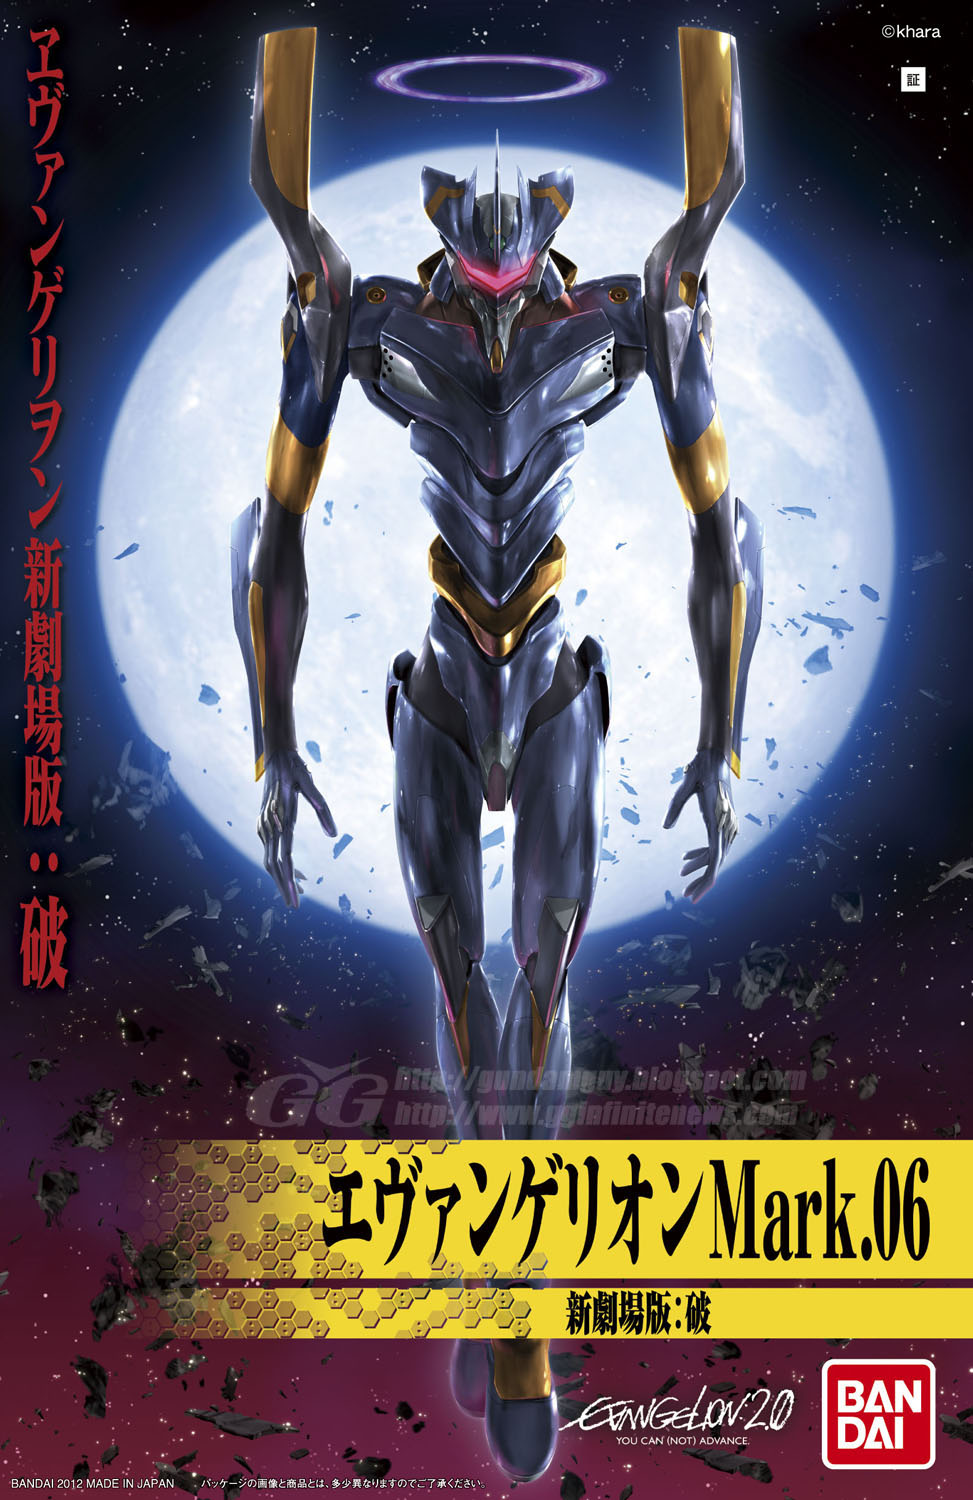 BANDAI EVANGELION HG 1/144 MARK 06 NEW MOVIE HA VER.